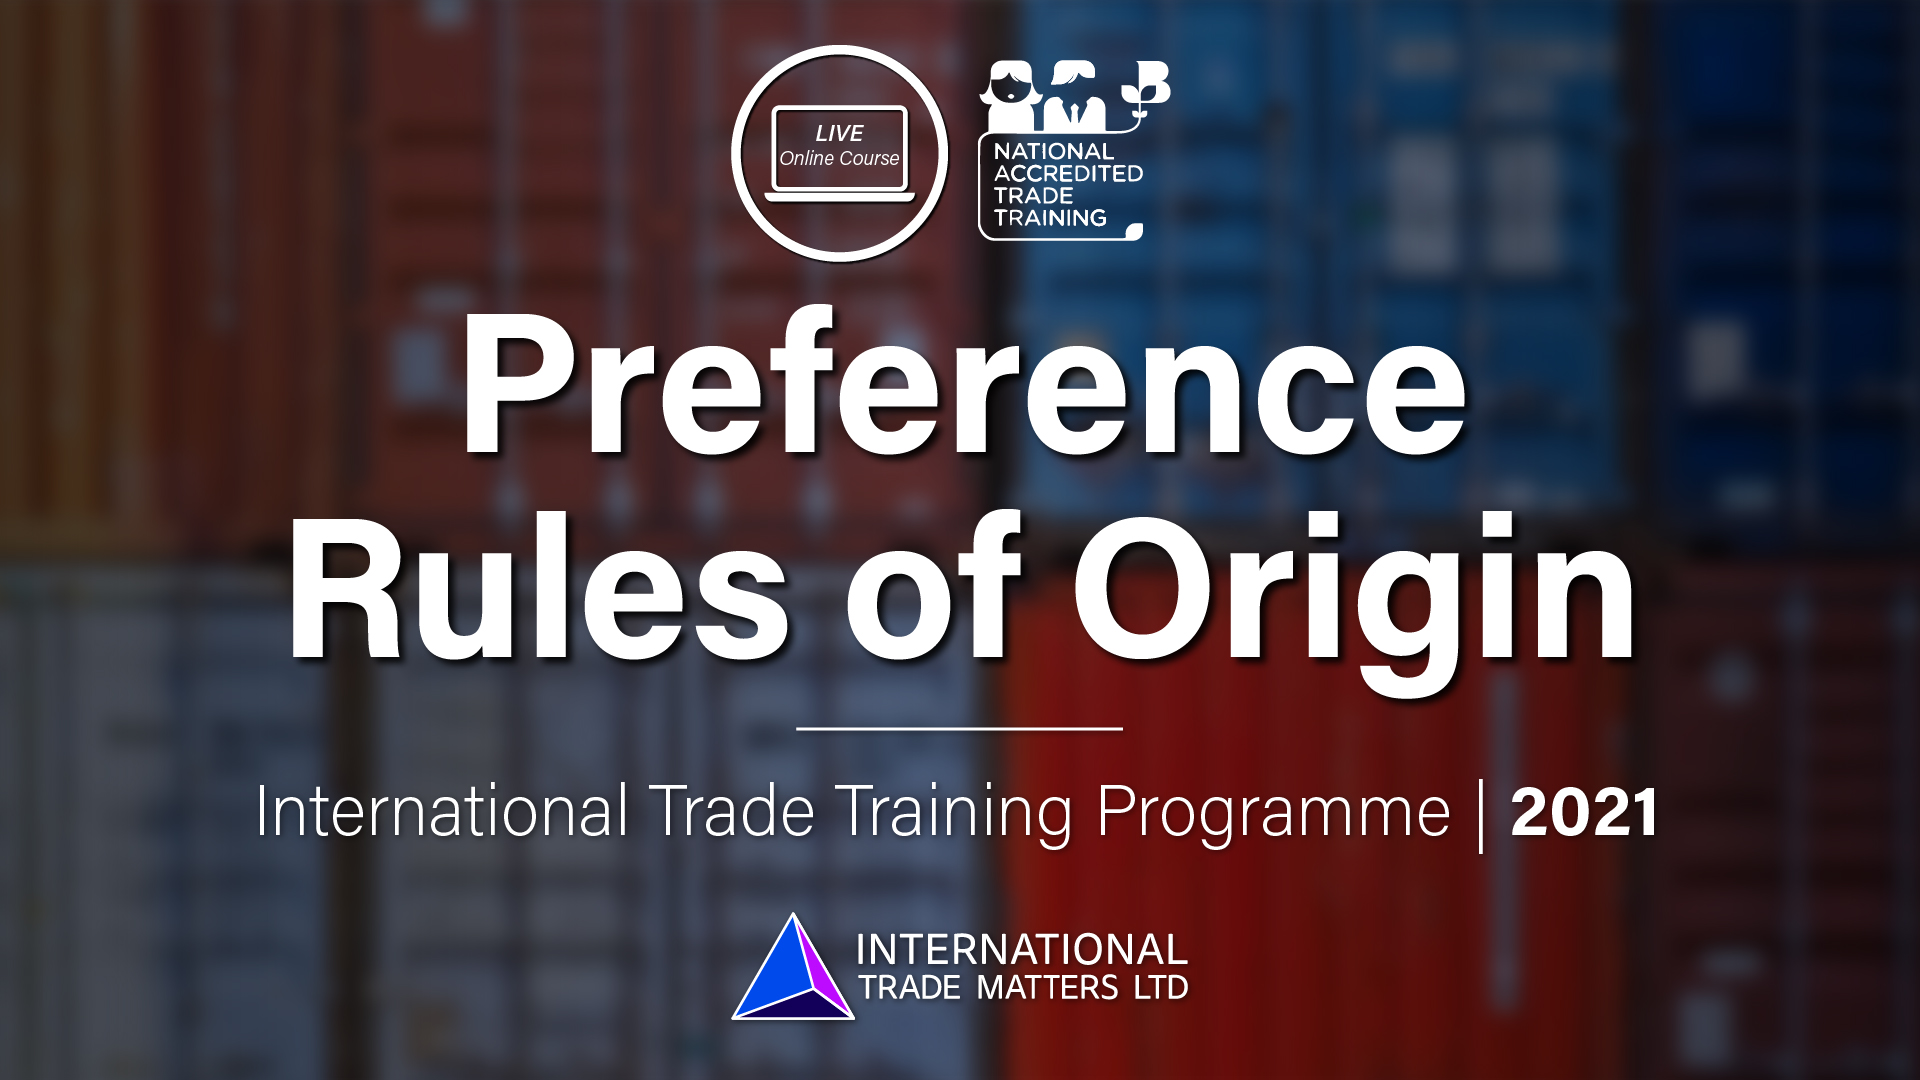 Preference Rules of Origin - An Online Course